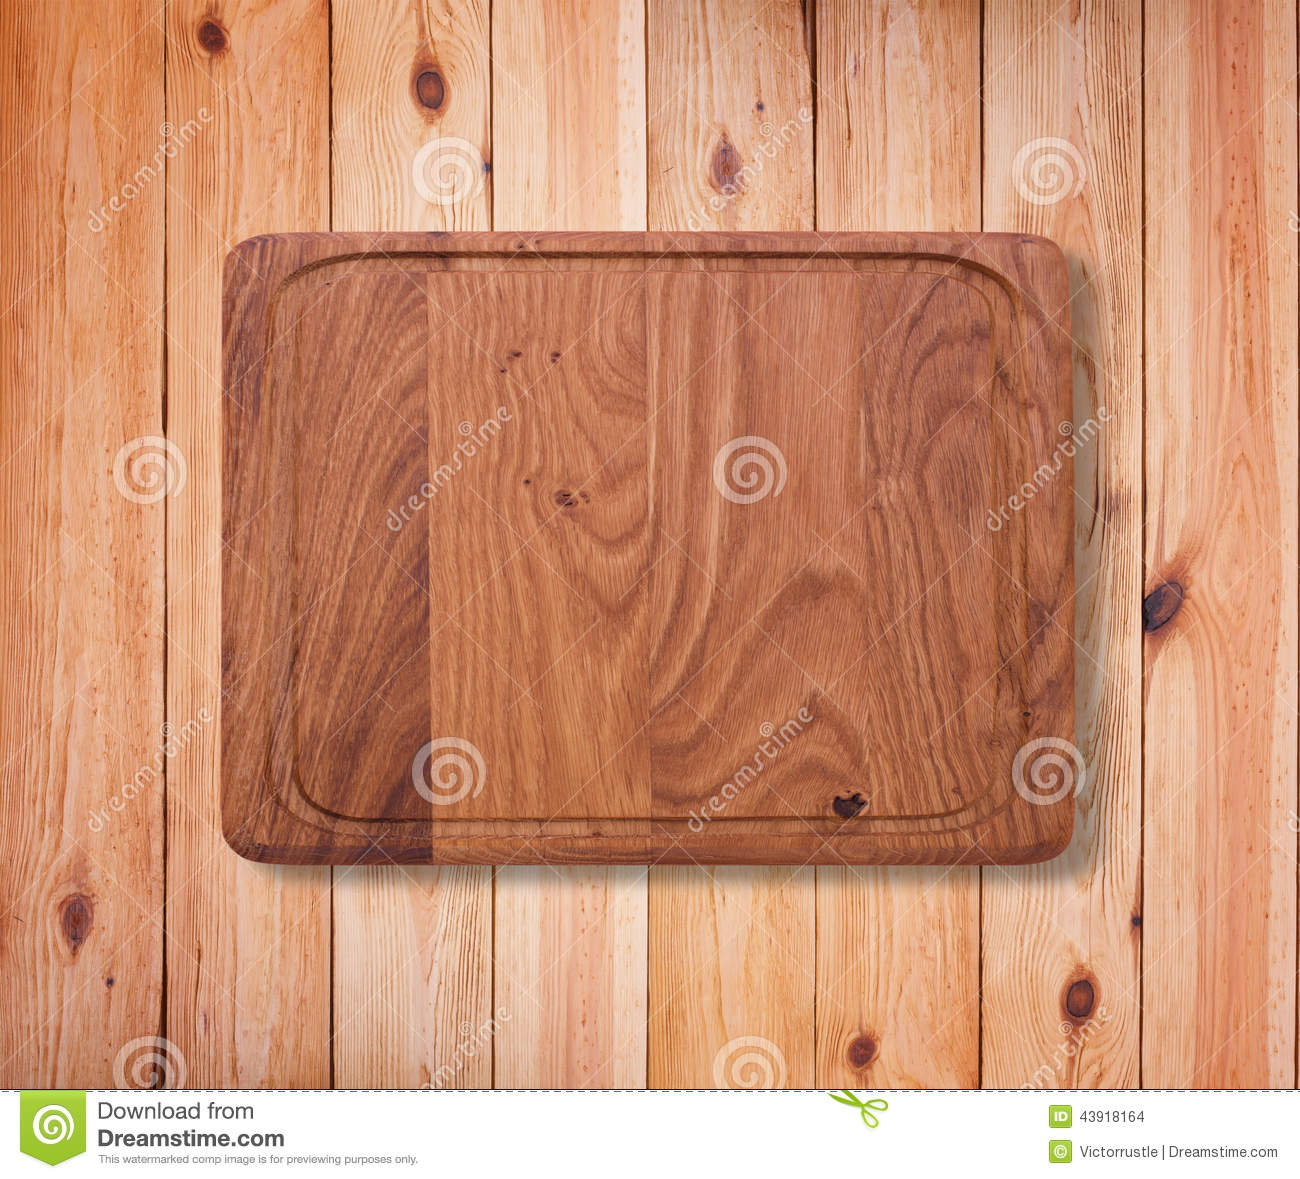 wood texture wooden kitchen cutting board close up empty table white background product montage product page 43918164